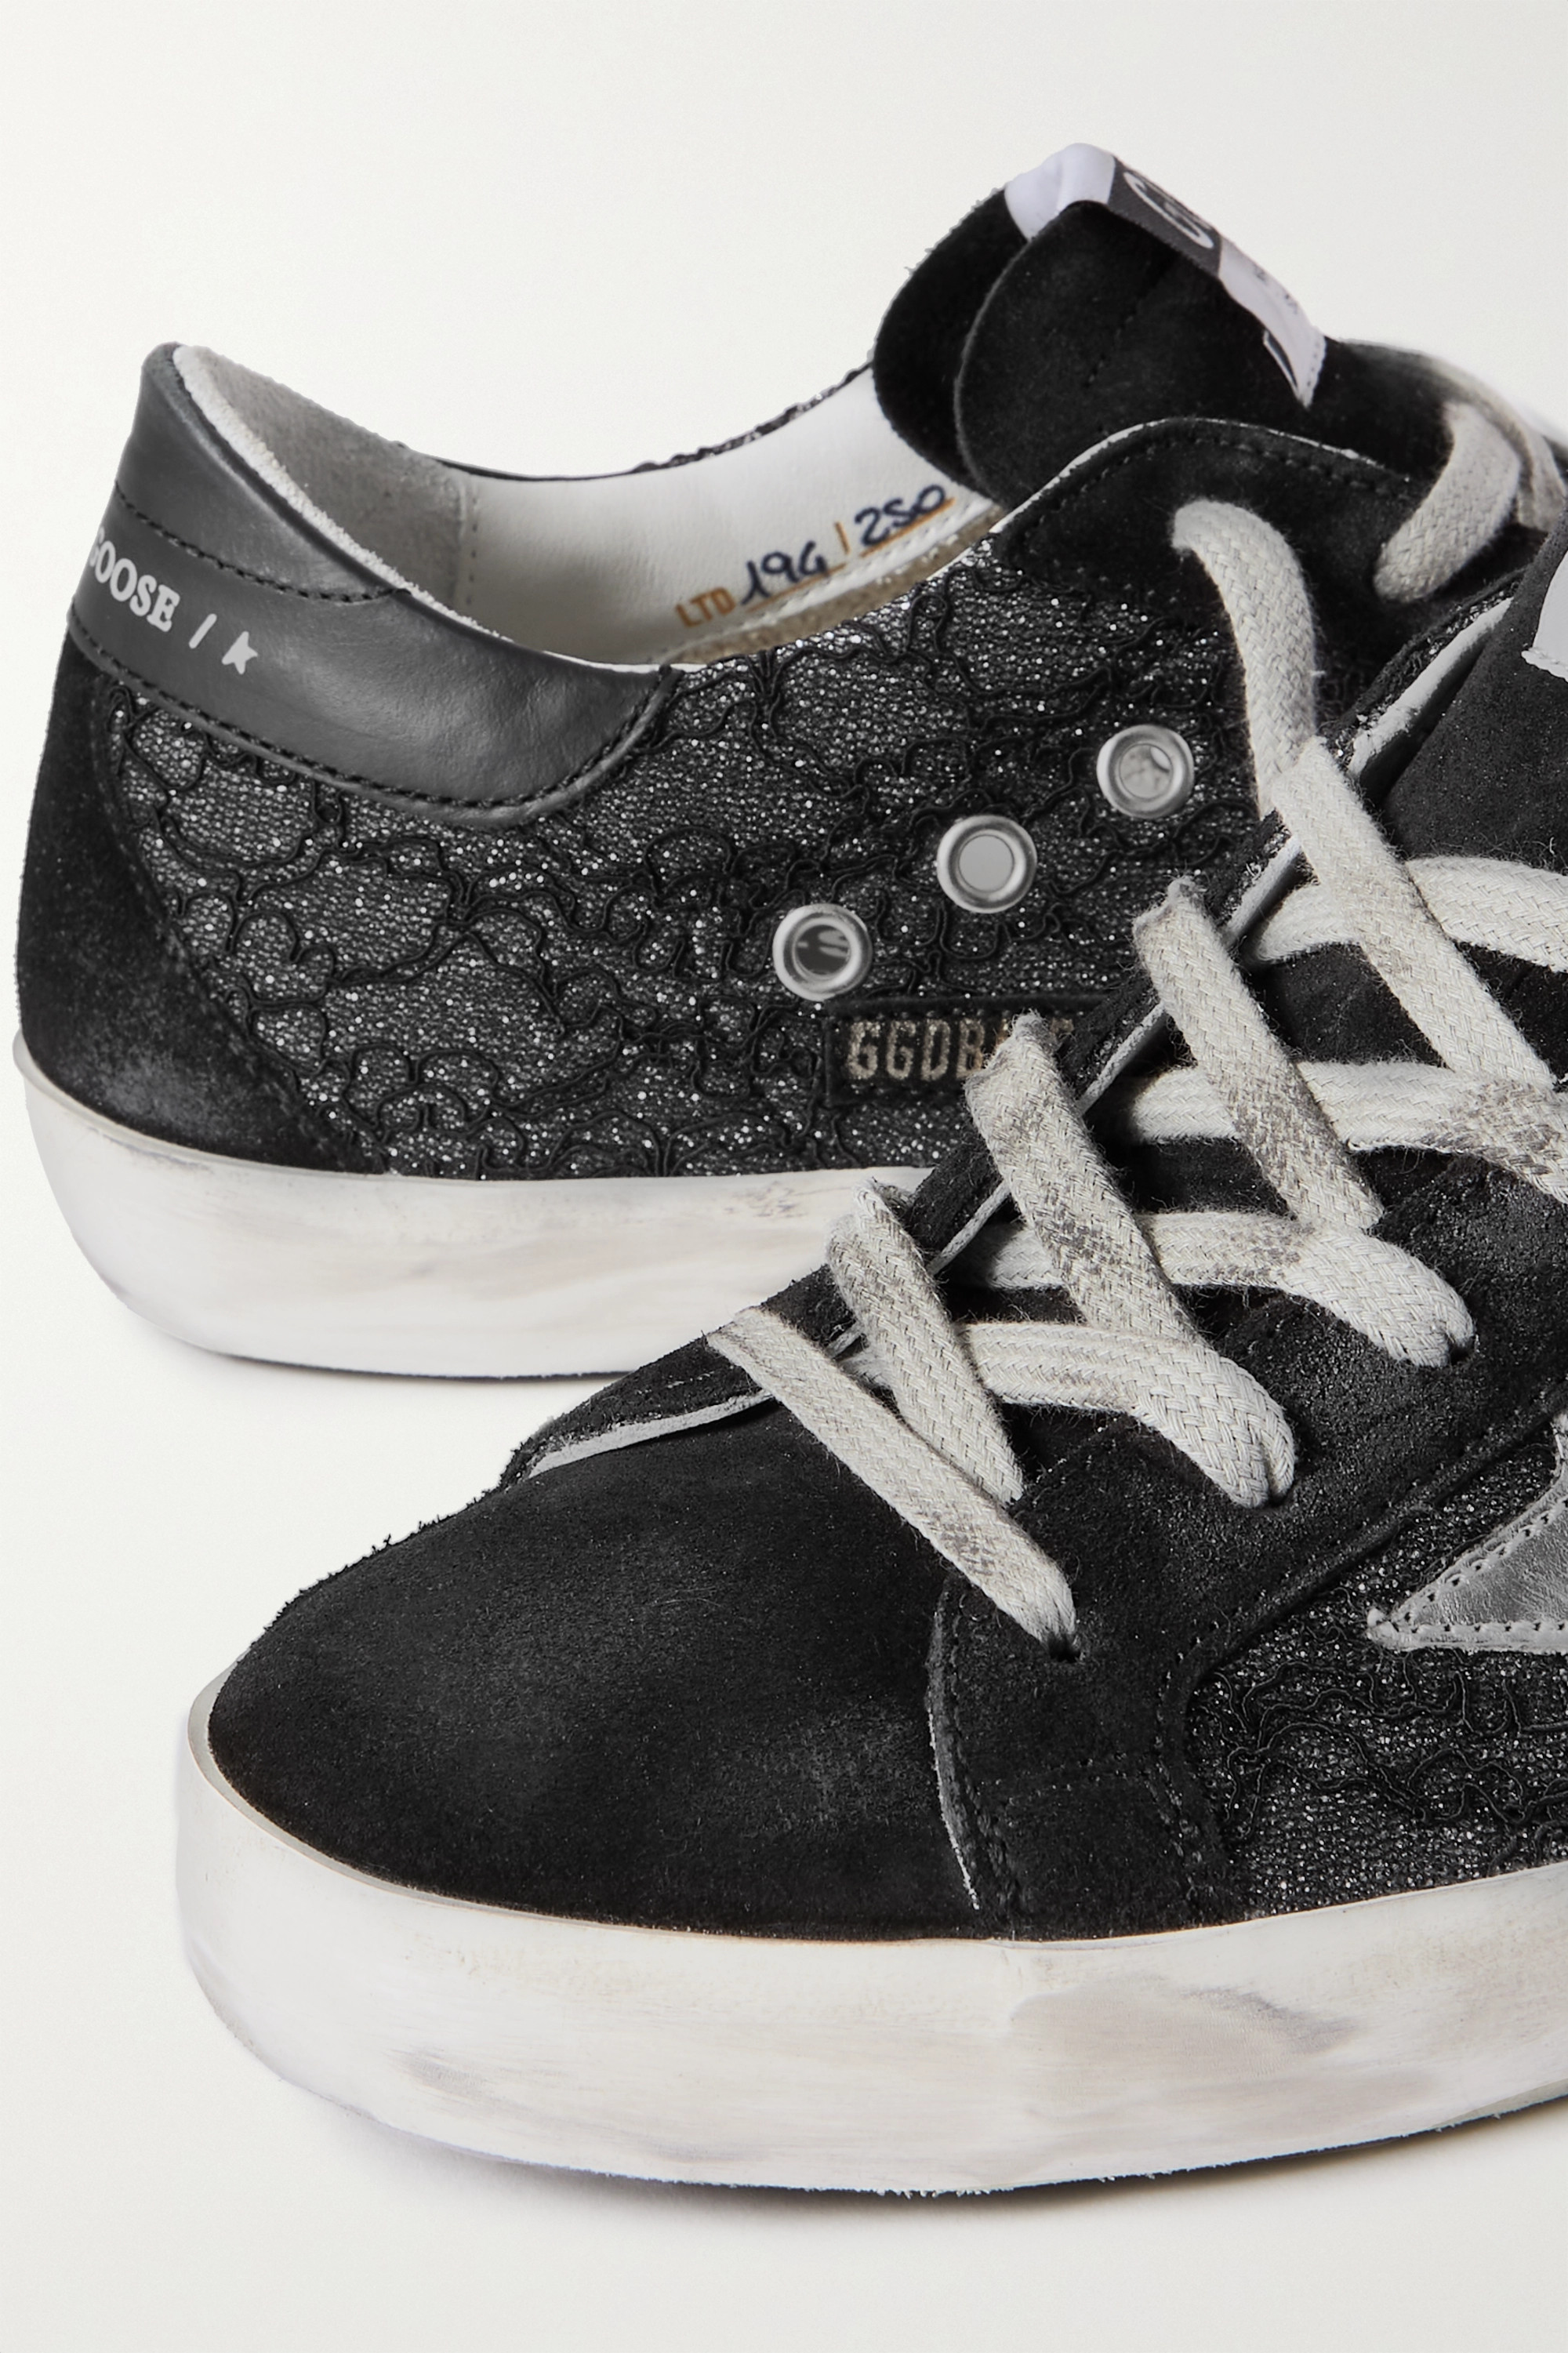 Golden Goose Superstar distressed suede, leather and glittered lace sneakers